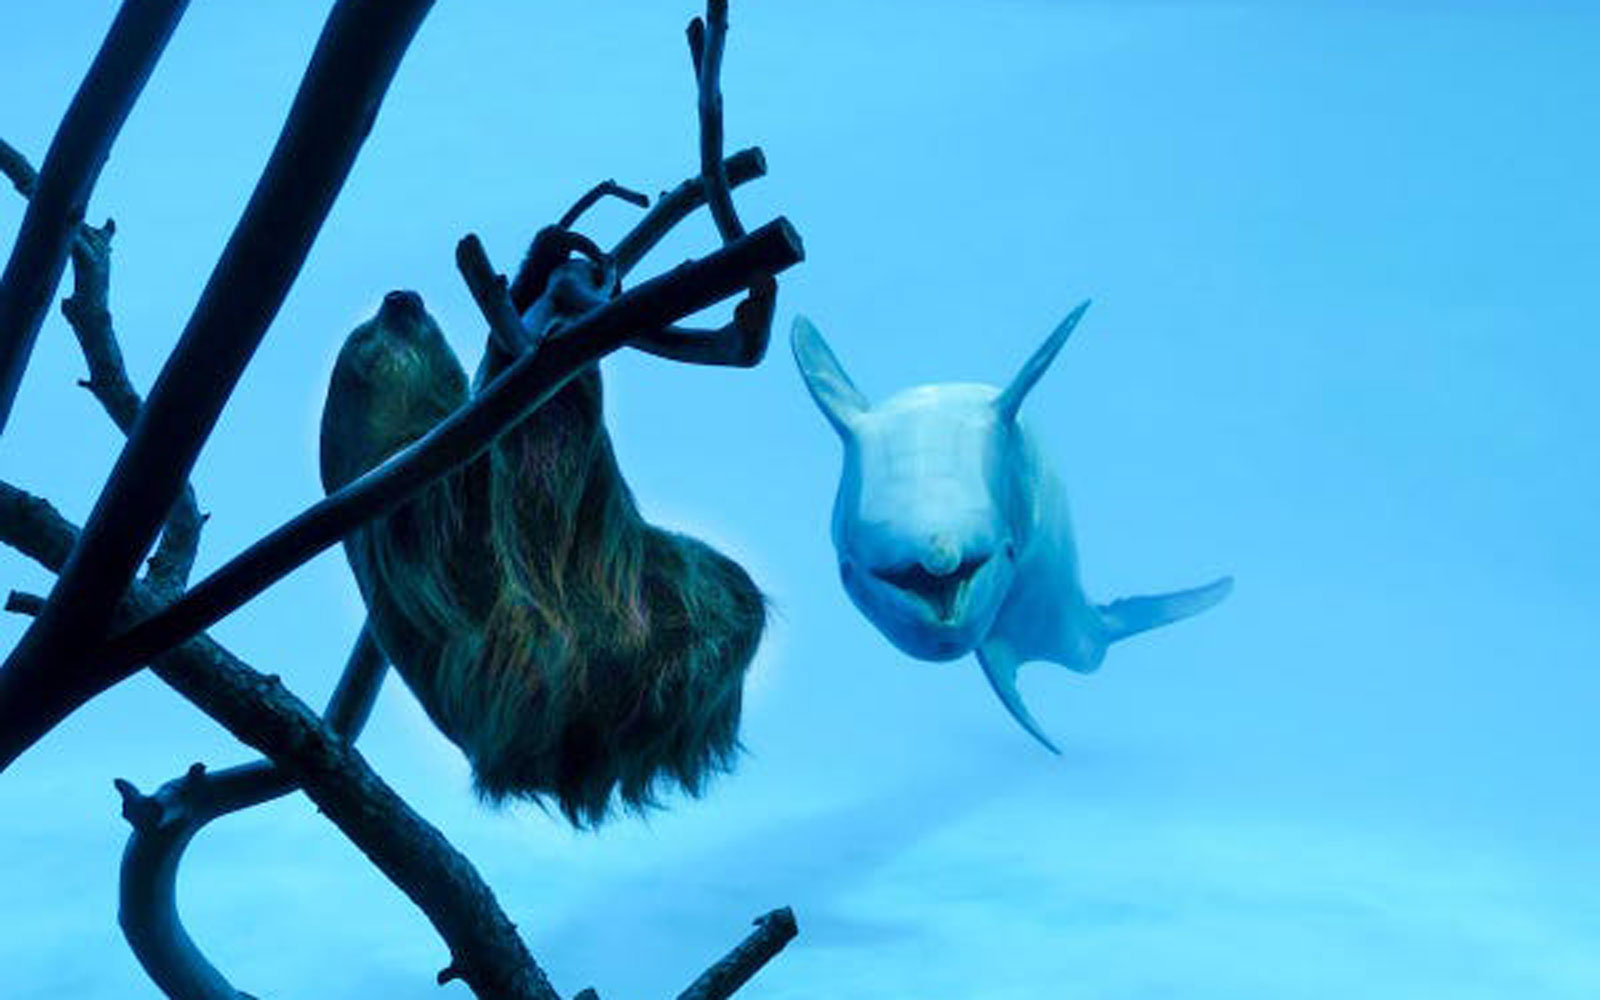 dolphin swims upside down beside a sloth